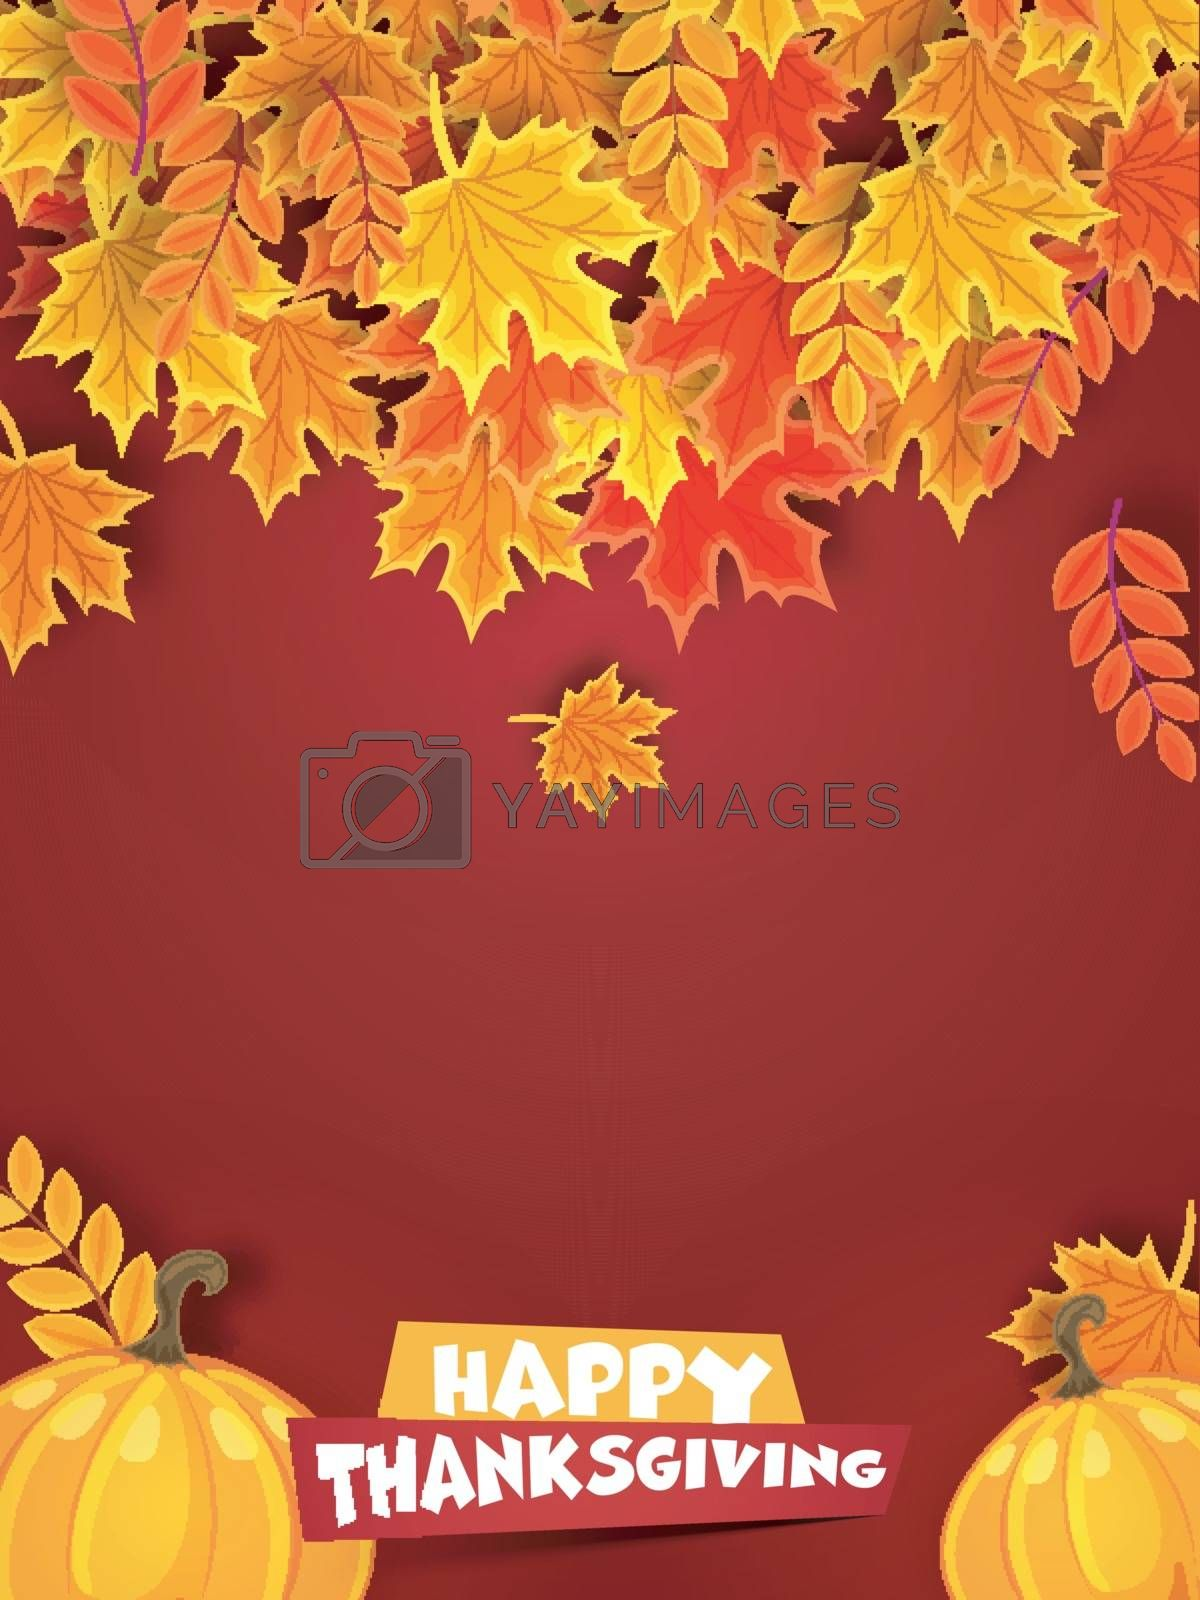 Creative  maple leaves and pumpkins decorated background, Can be used as greeting card or invitation card design for Happy Thanksgiving Day celebration.